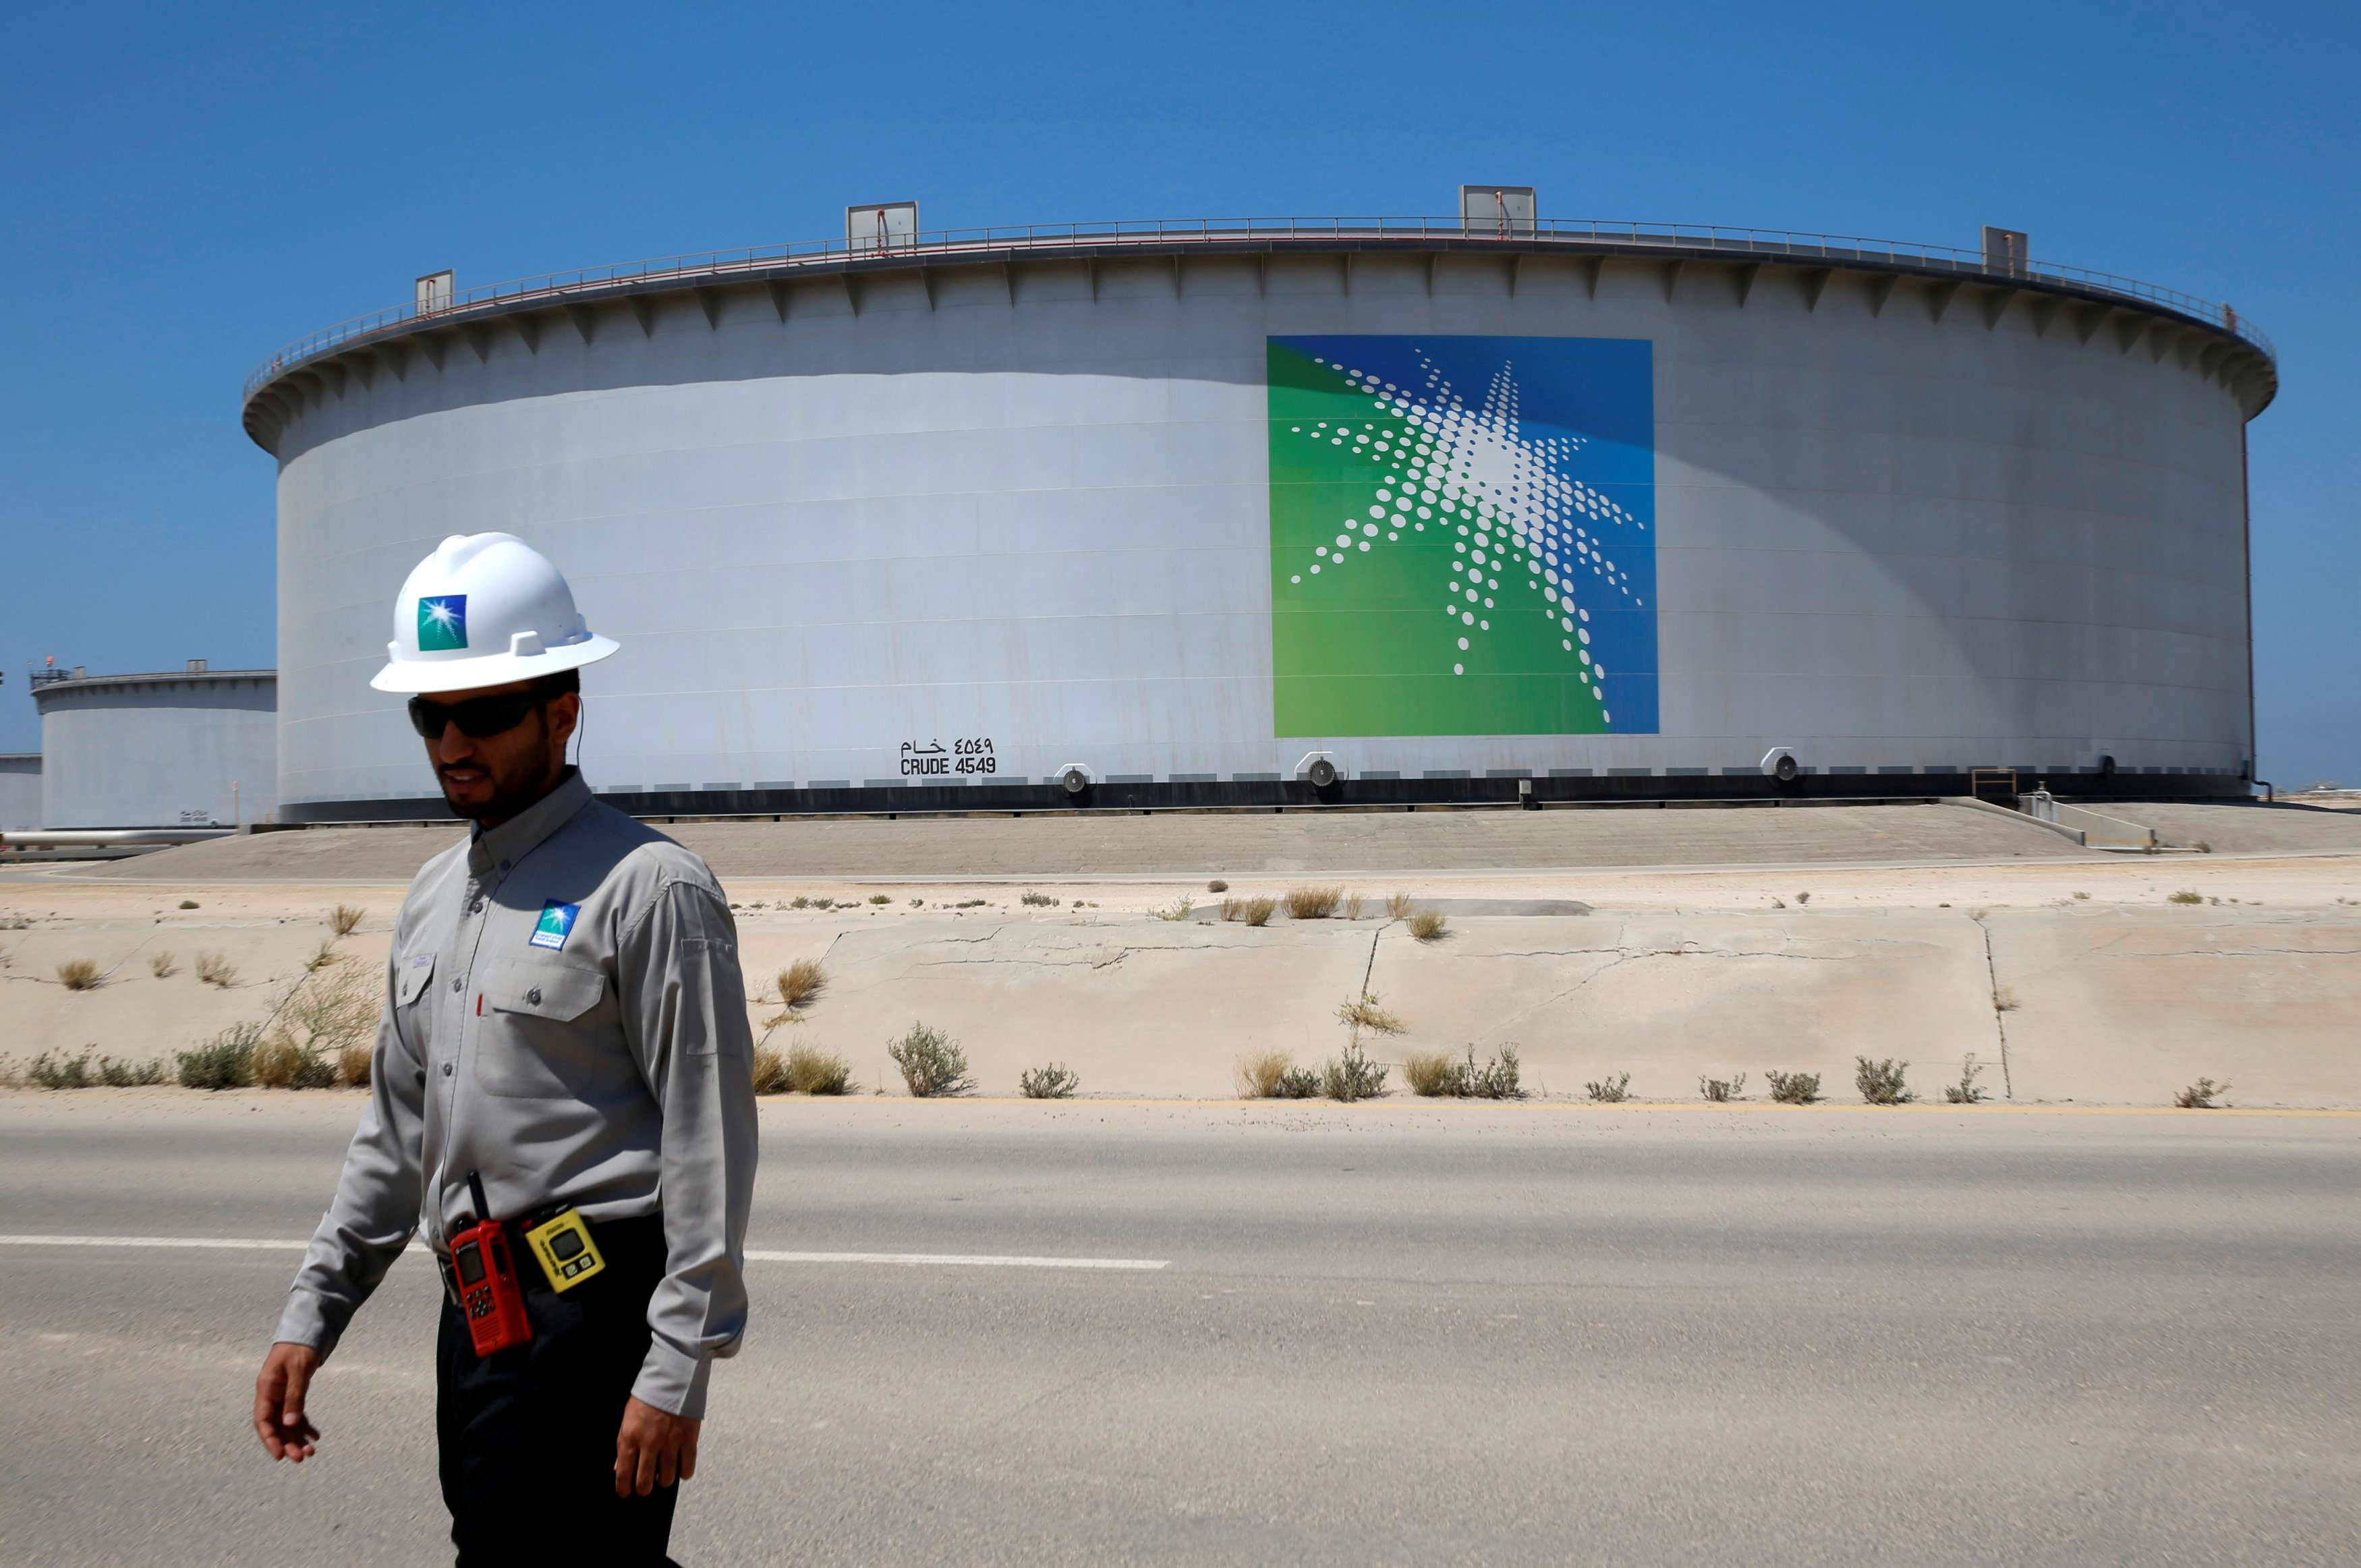 Restructuring the core. An Aramco employee walks near an oil tank at Saudi Aramco's Ras Tanura oil refinery, on May 21.                   (Reuters)